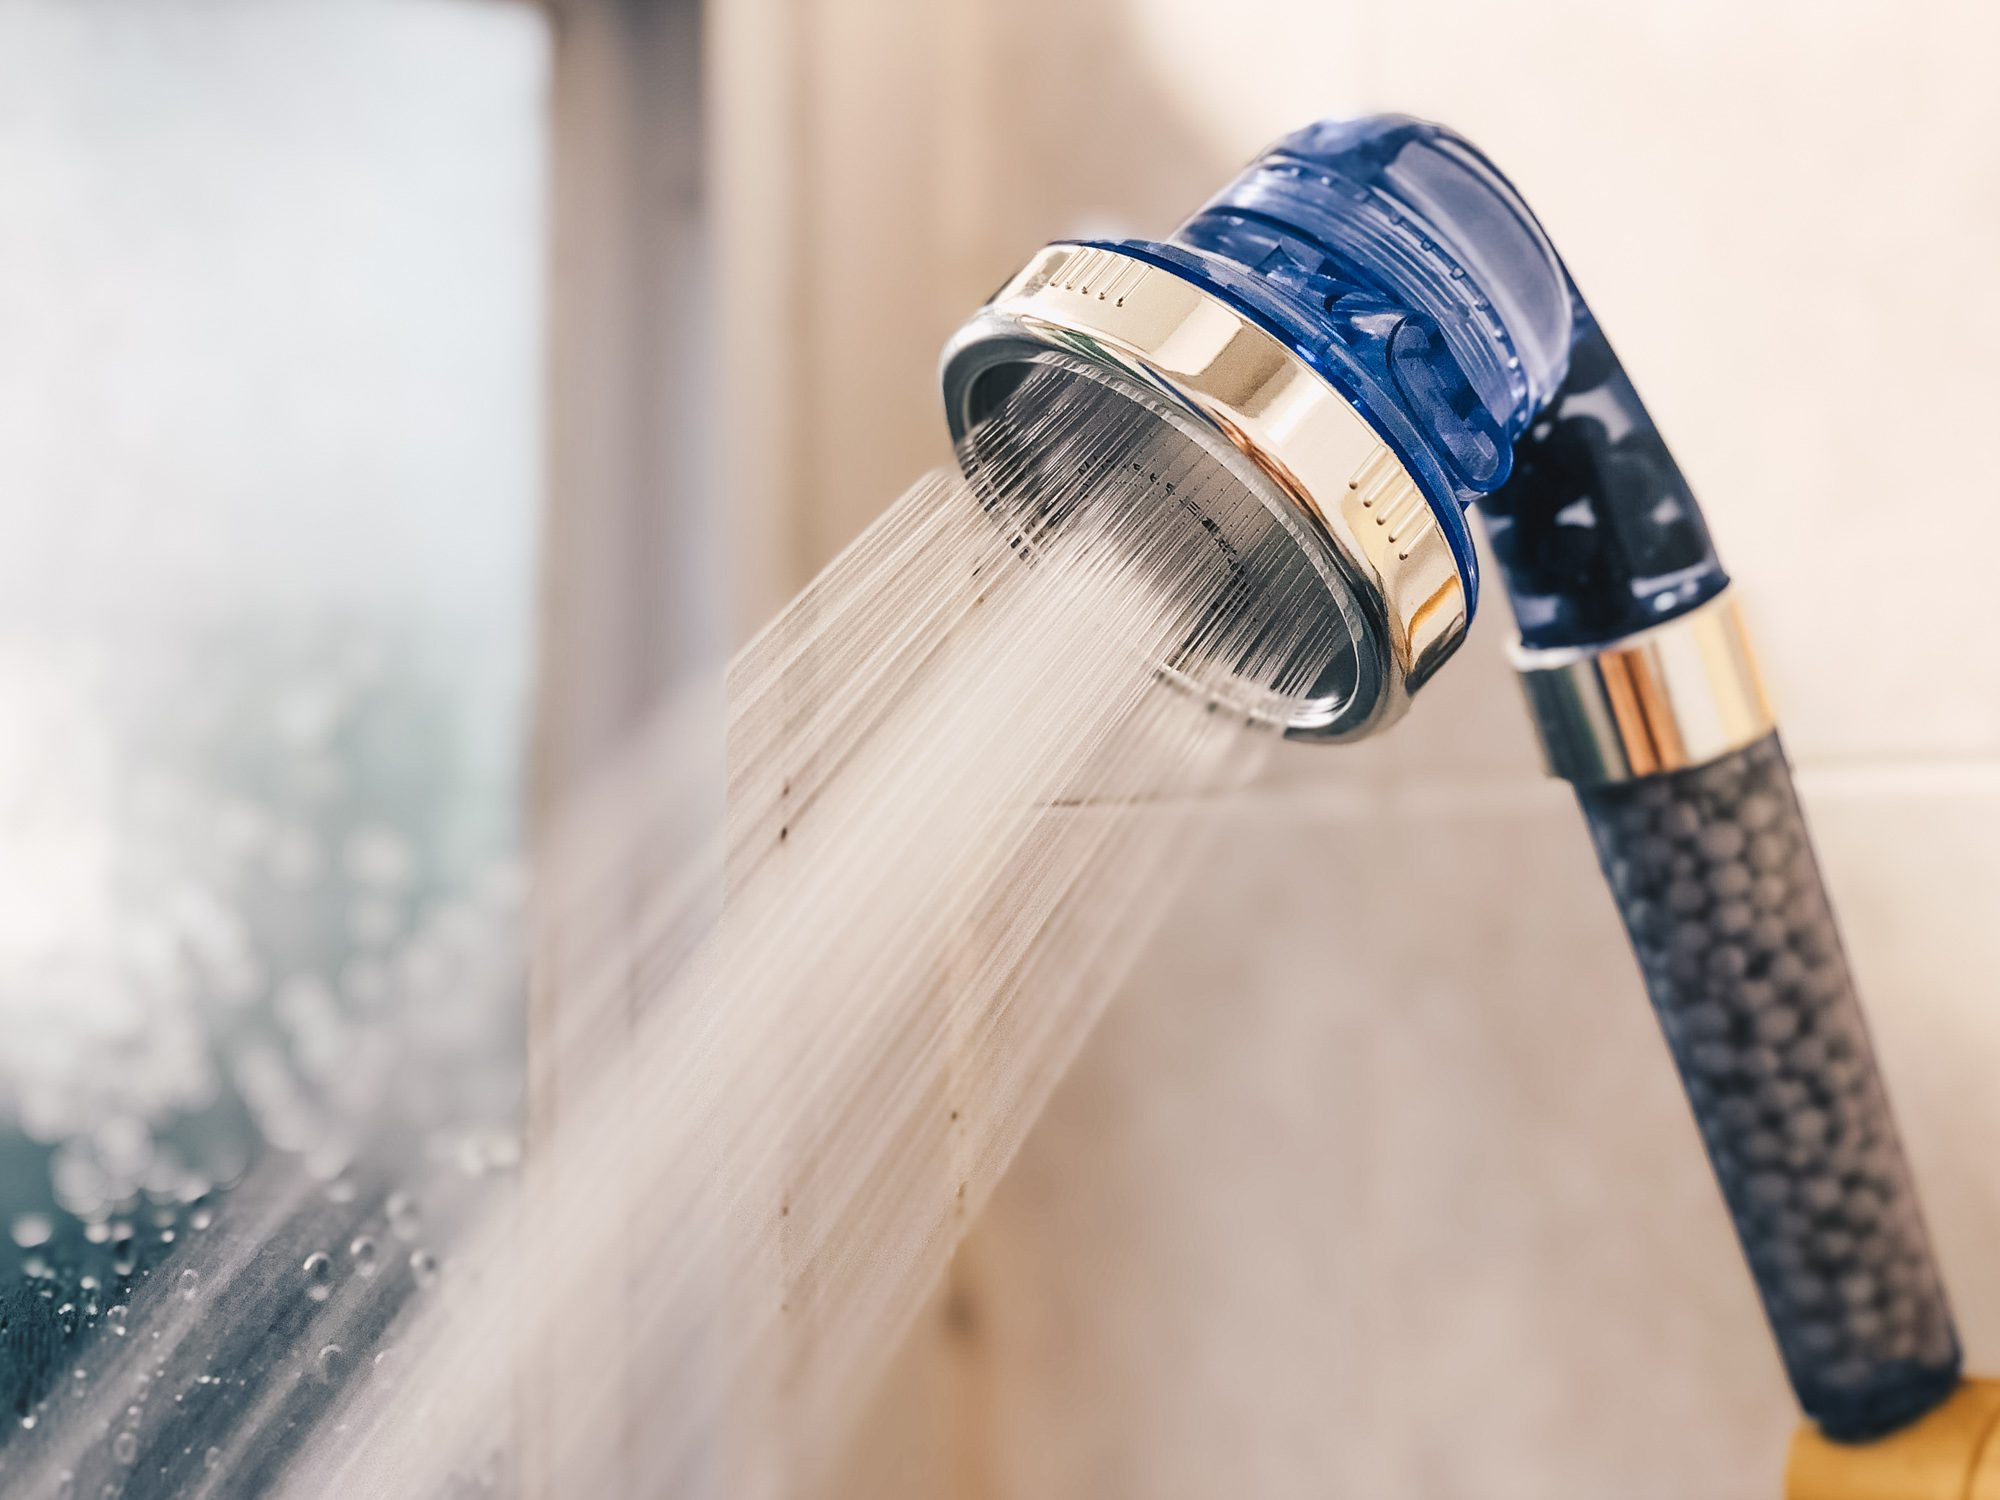 Save Water with Water Filter Shower Head from Filtech